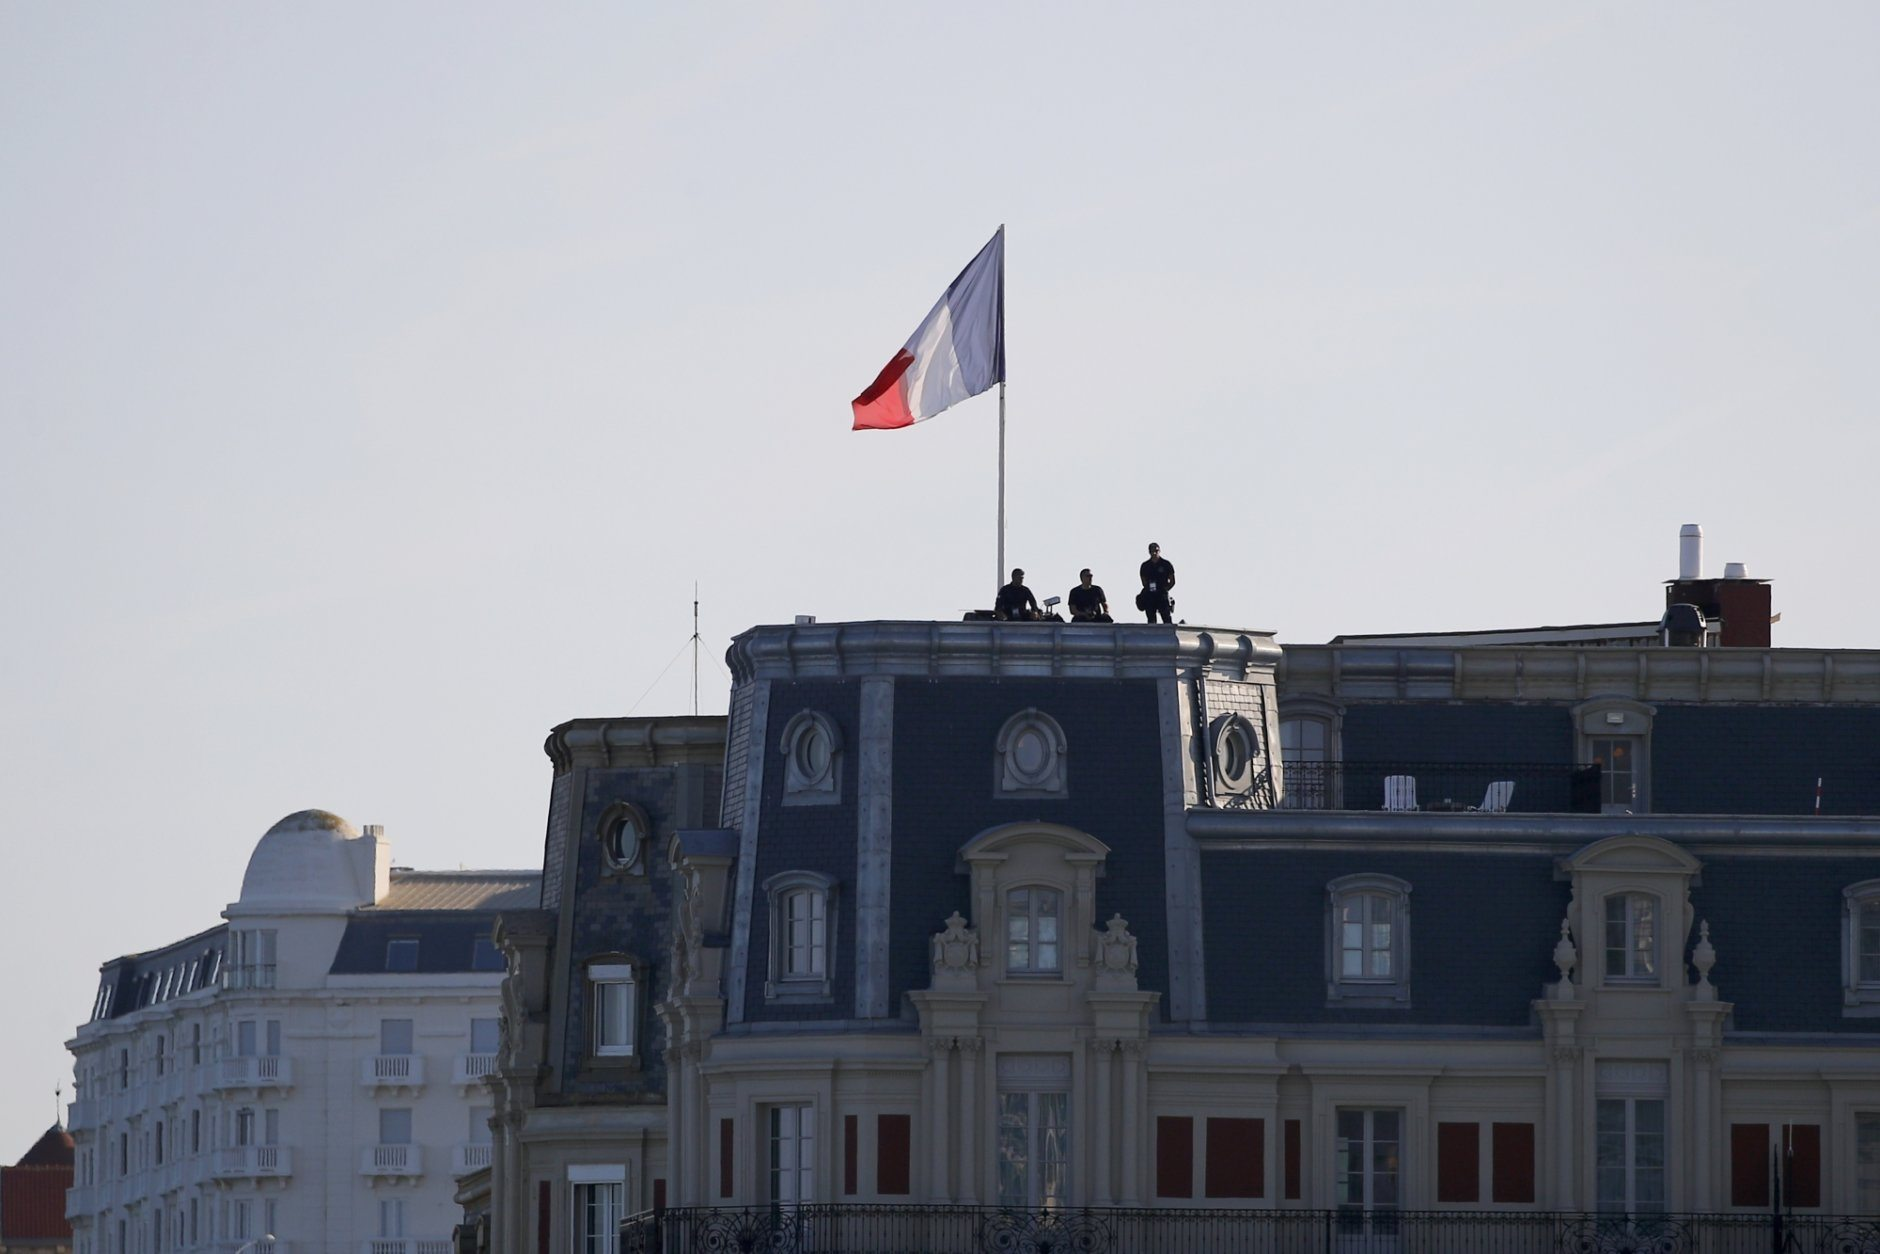 Police forces stand atop a building roof Saturday, Aug. 24, 2019 in Biarritz. Leaders of the Group of Seven countries arrive on Saturday to discuss issues including the struggling global economy and climate change until Monday. They include the United States, Germany, Japan, Britain, France, Canada and Italy. (AP Photo/Francois Mori)